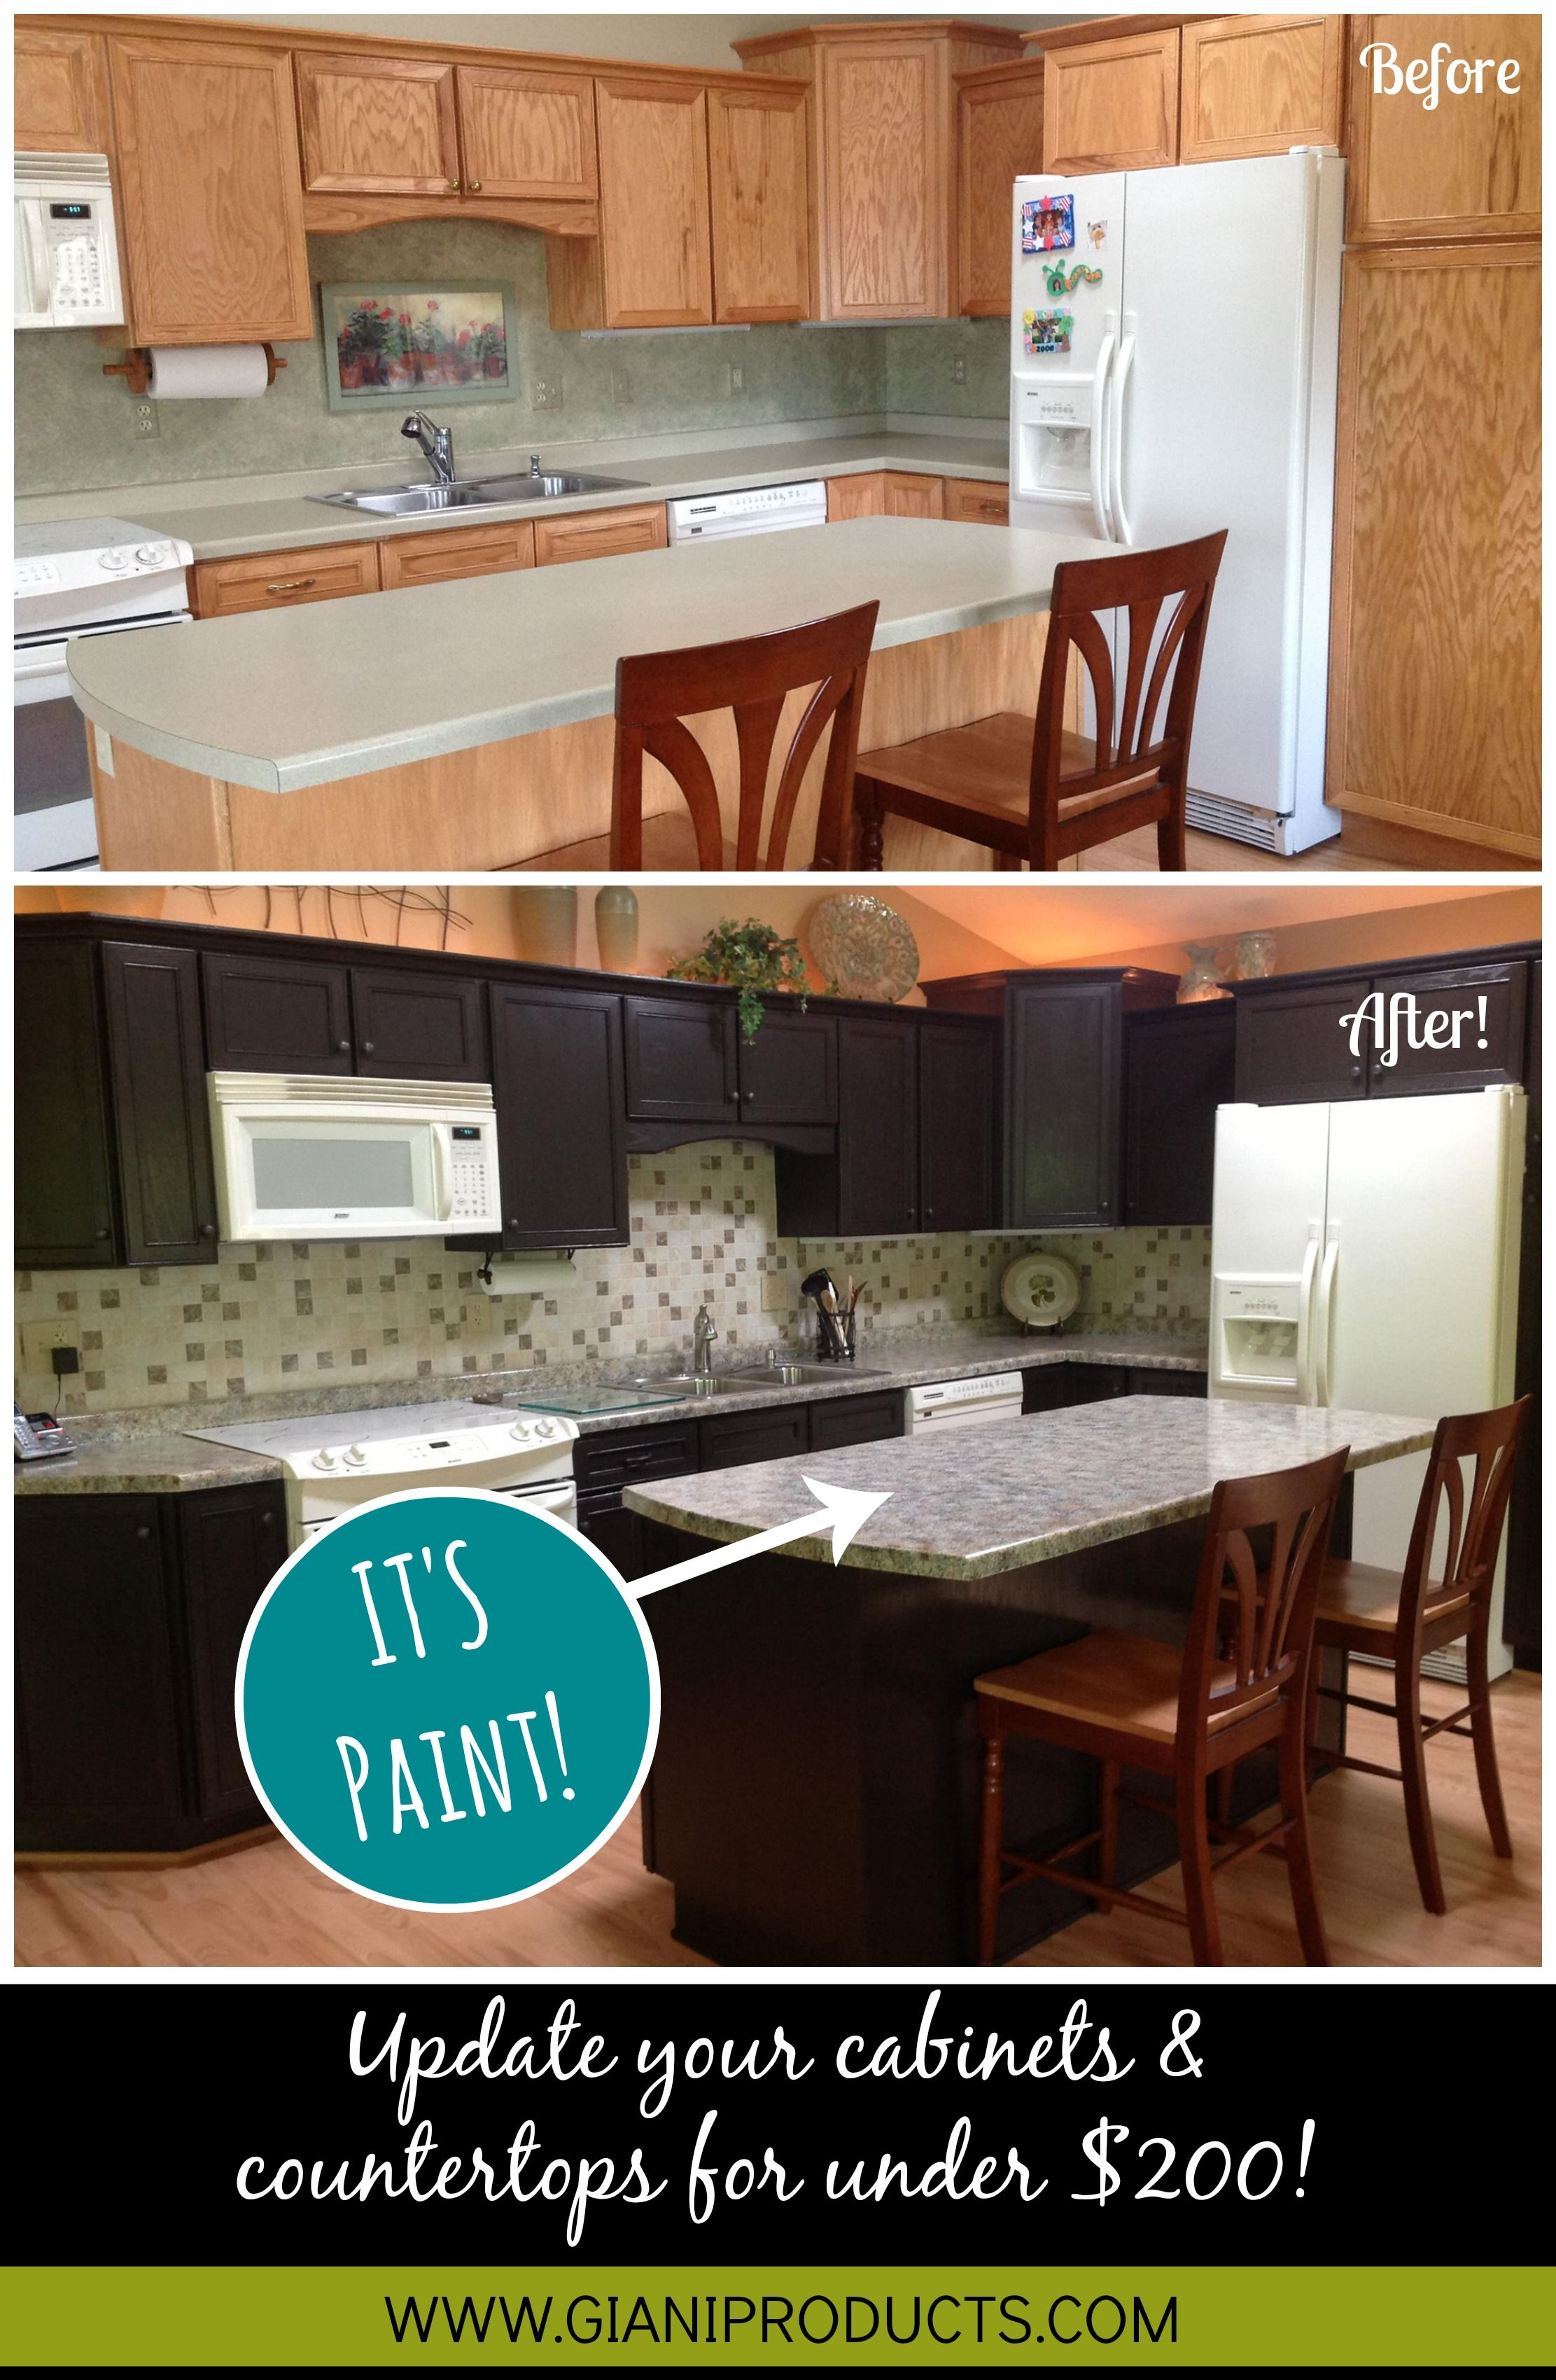 Granite Kitchen Makeovers Kitchen Update On A Budget Paint That Looks Like Granite And One